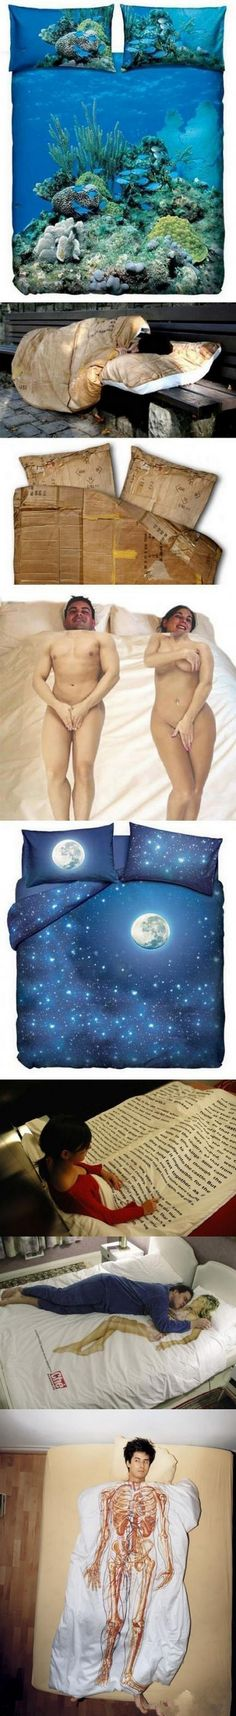 Cool Bedcovers